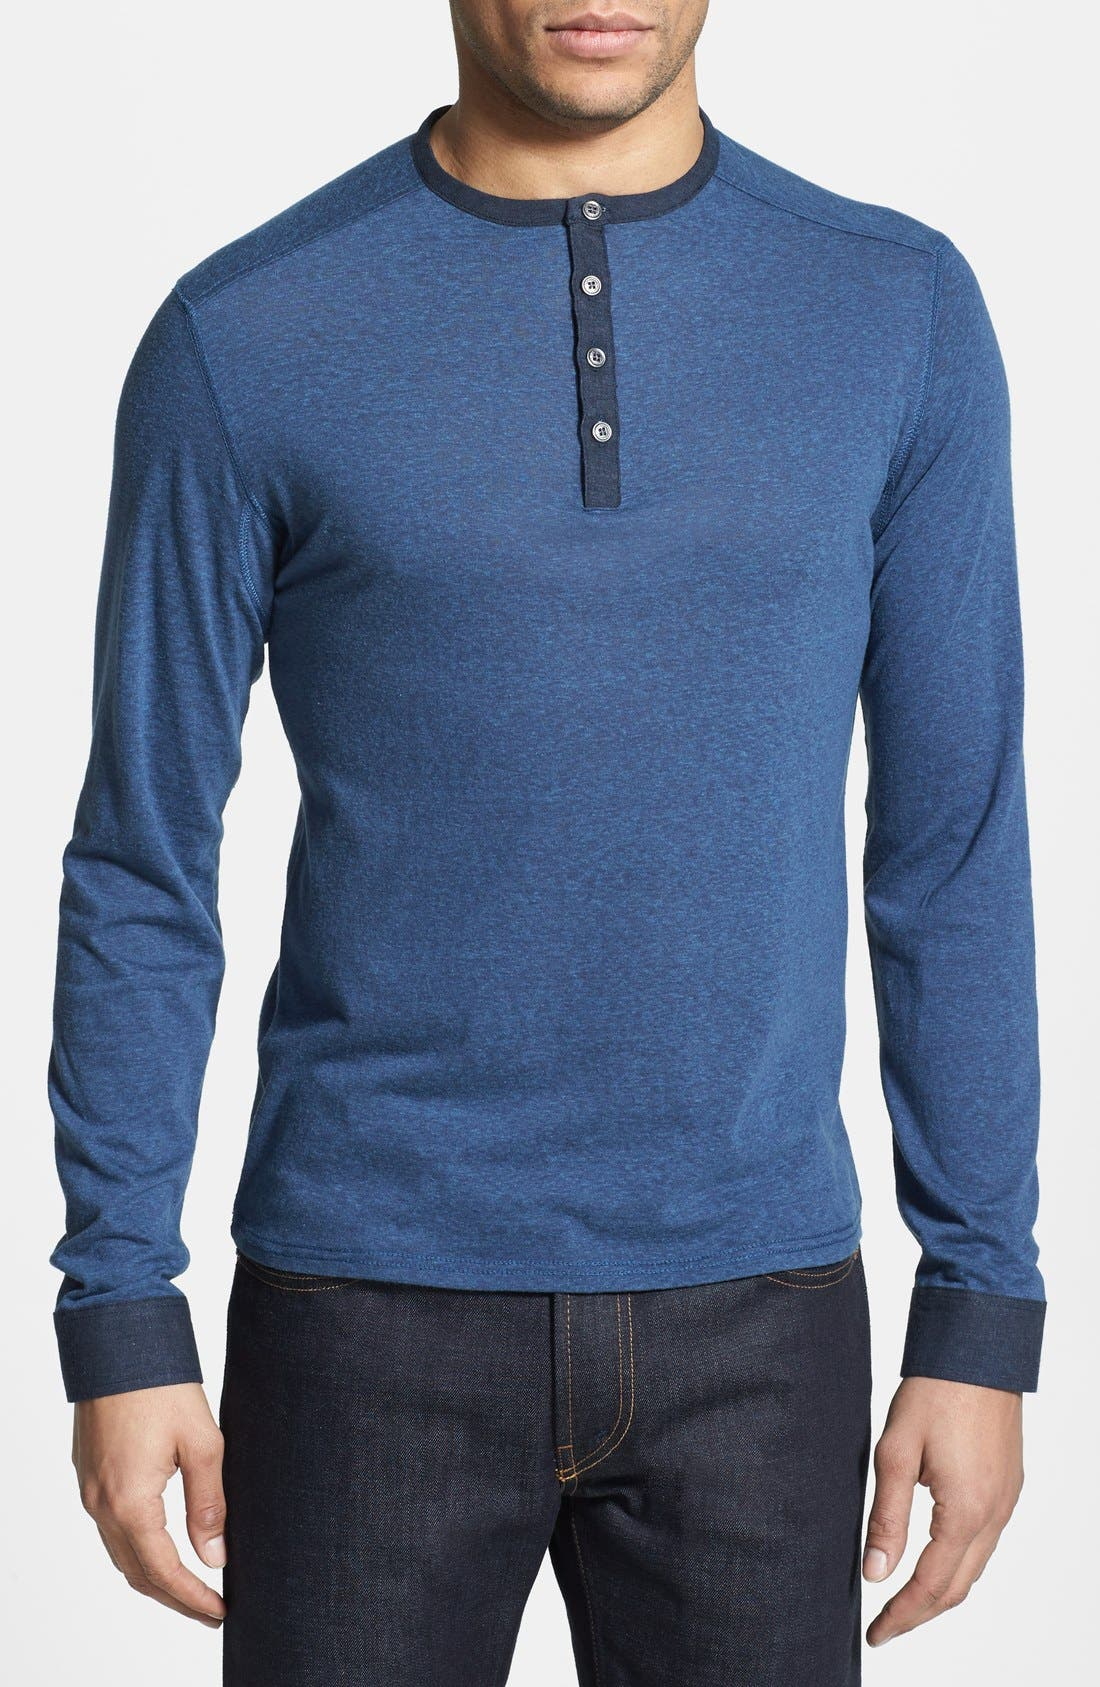 Main Image - Vince Camuto Slim Fit Knit Henley